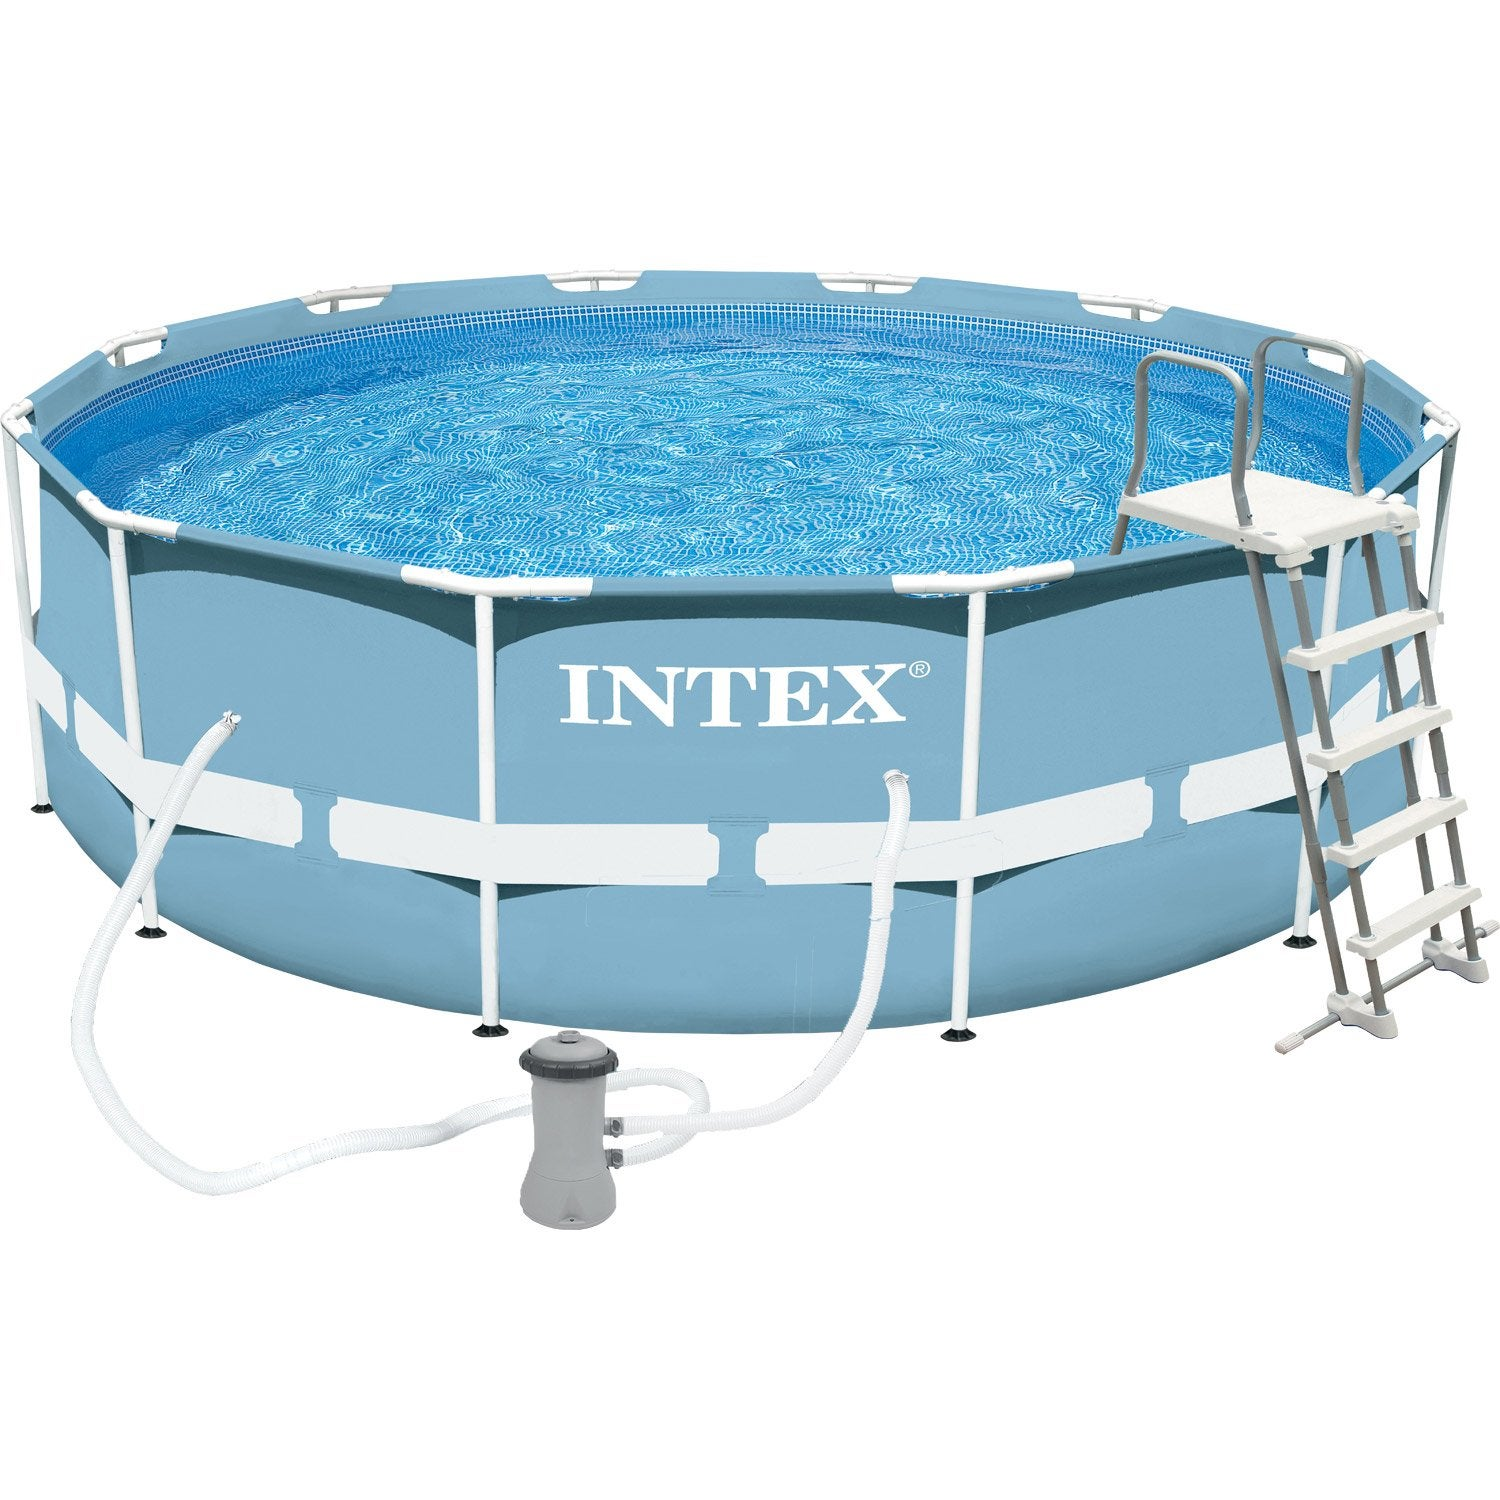 Piscine hors sol autoportante tubulaire prism frame intex for Piscine bestway 3 66